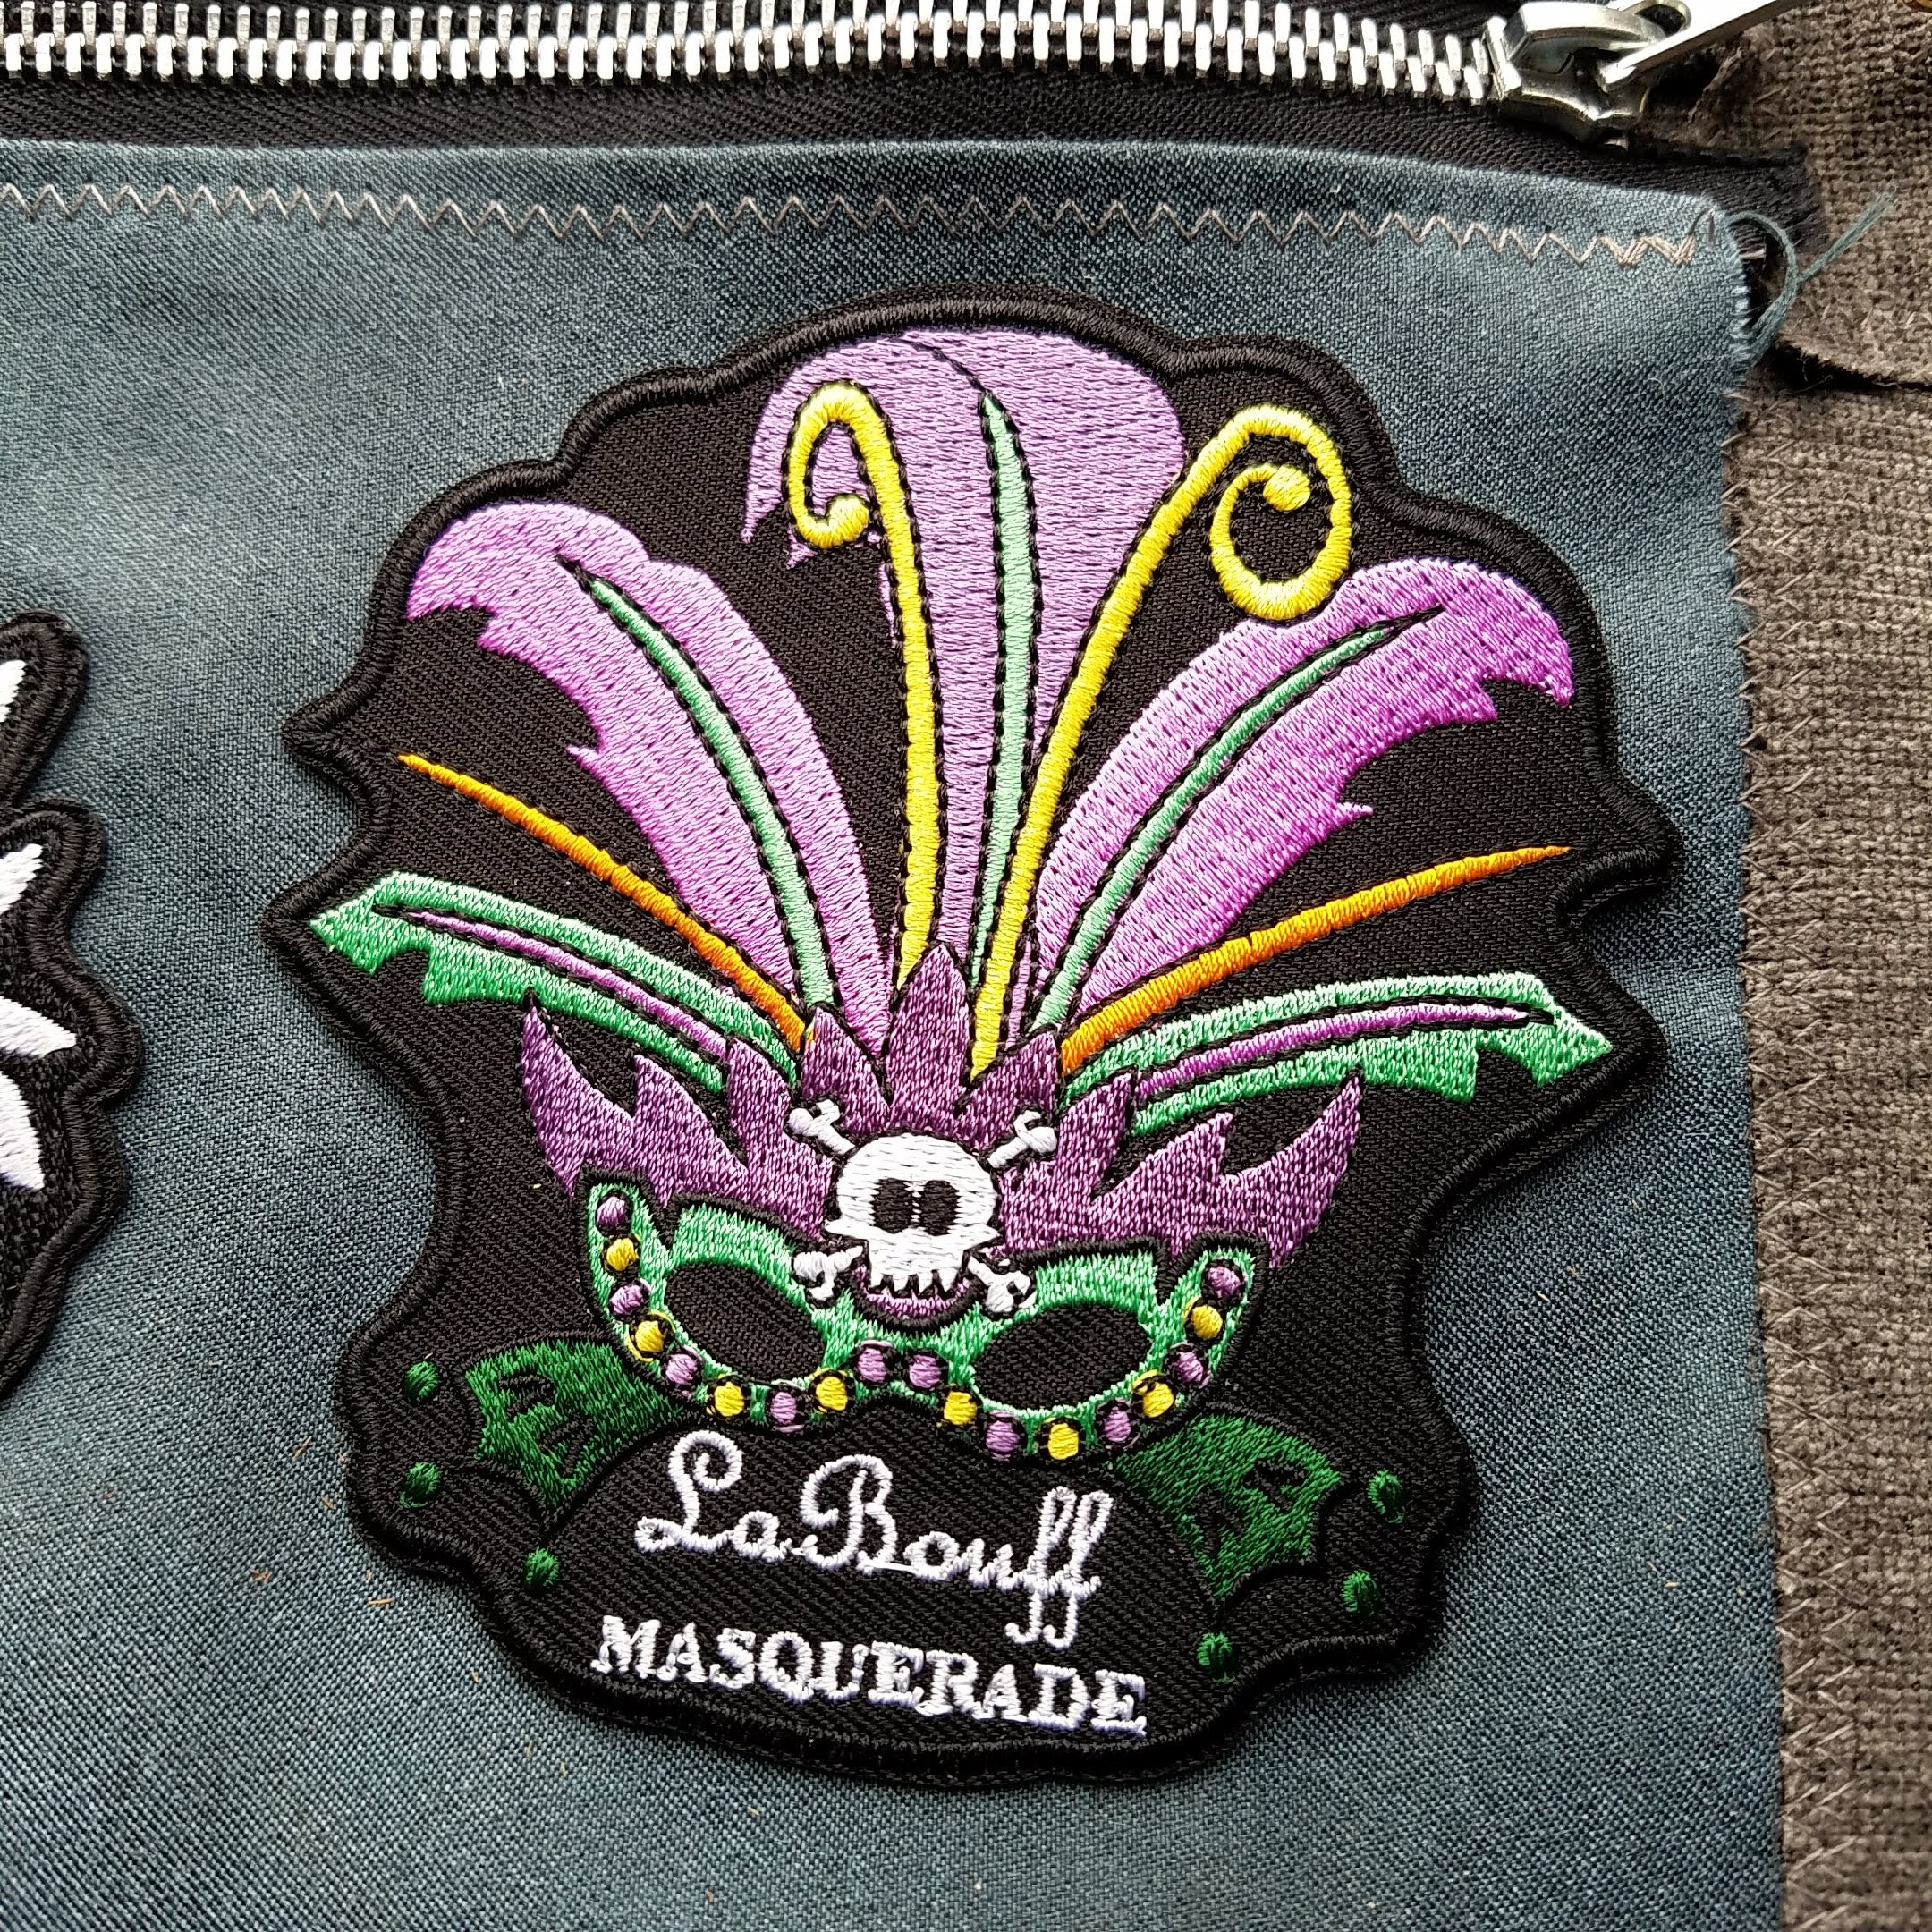 "Disney's Princess and the Frog inspired Patch - ""La Bouff Masquerade"" – February 2018 (Limited Edition) - Obscure Disney"